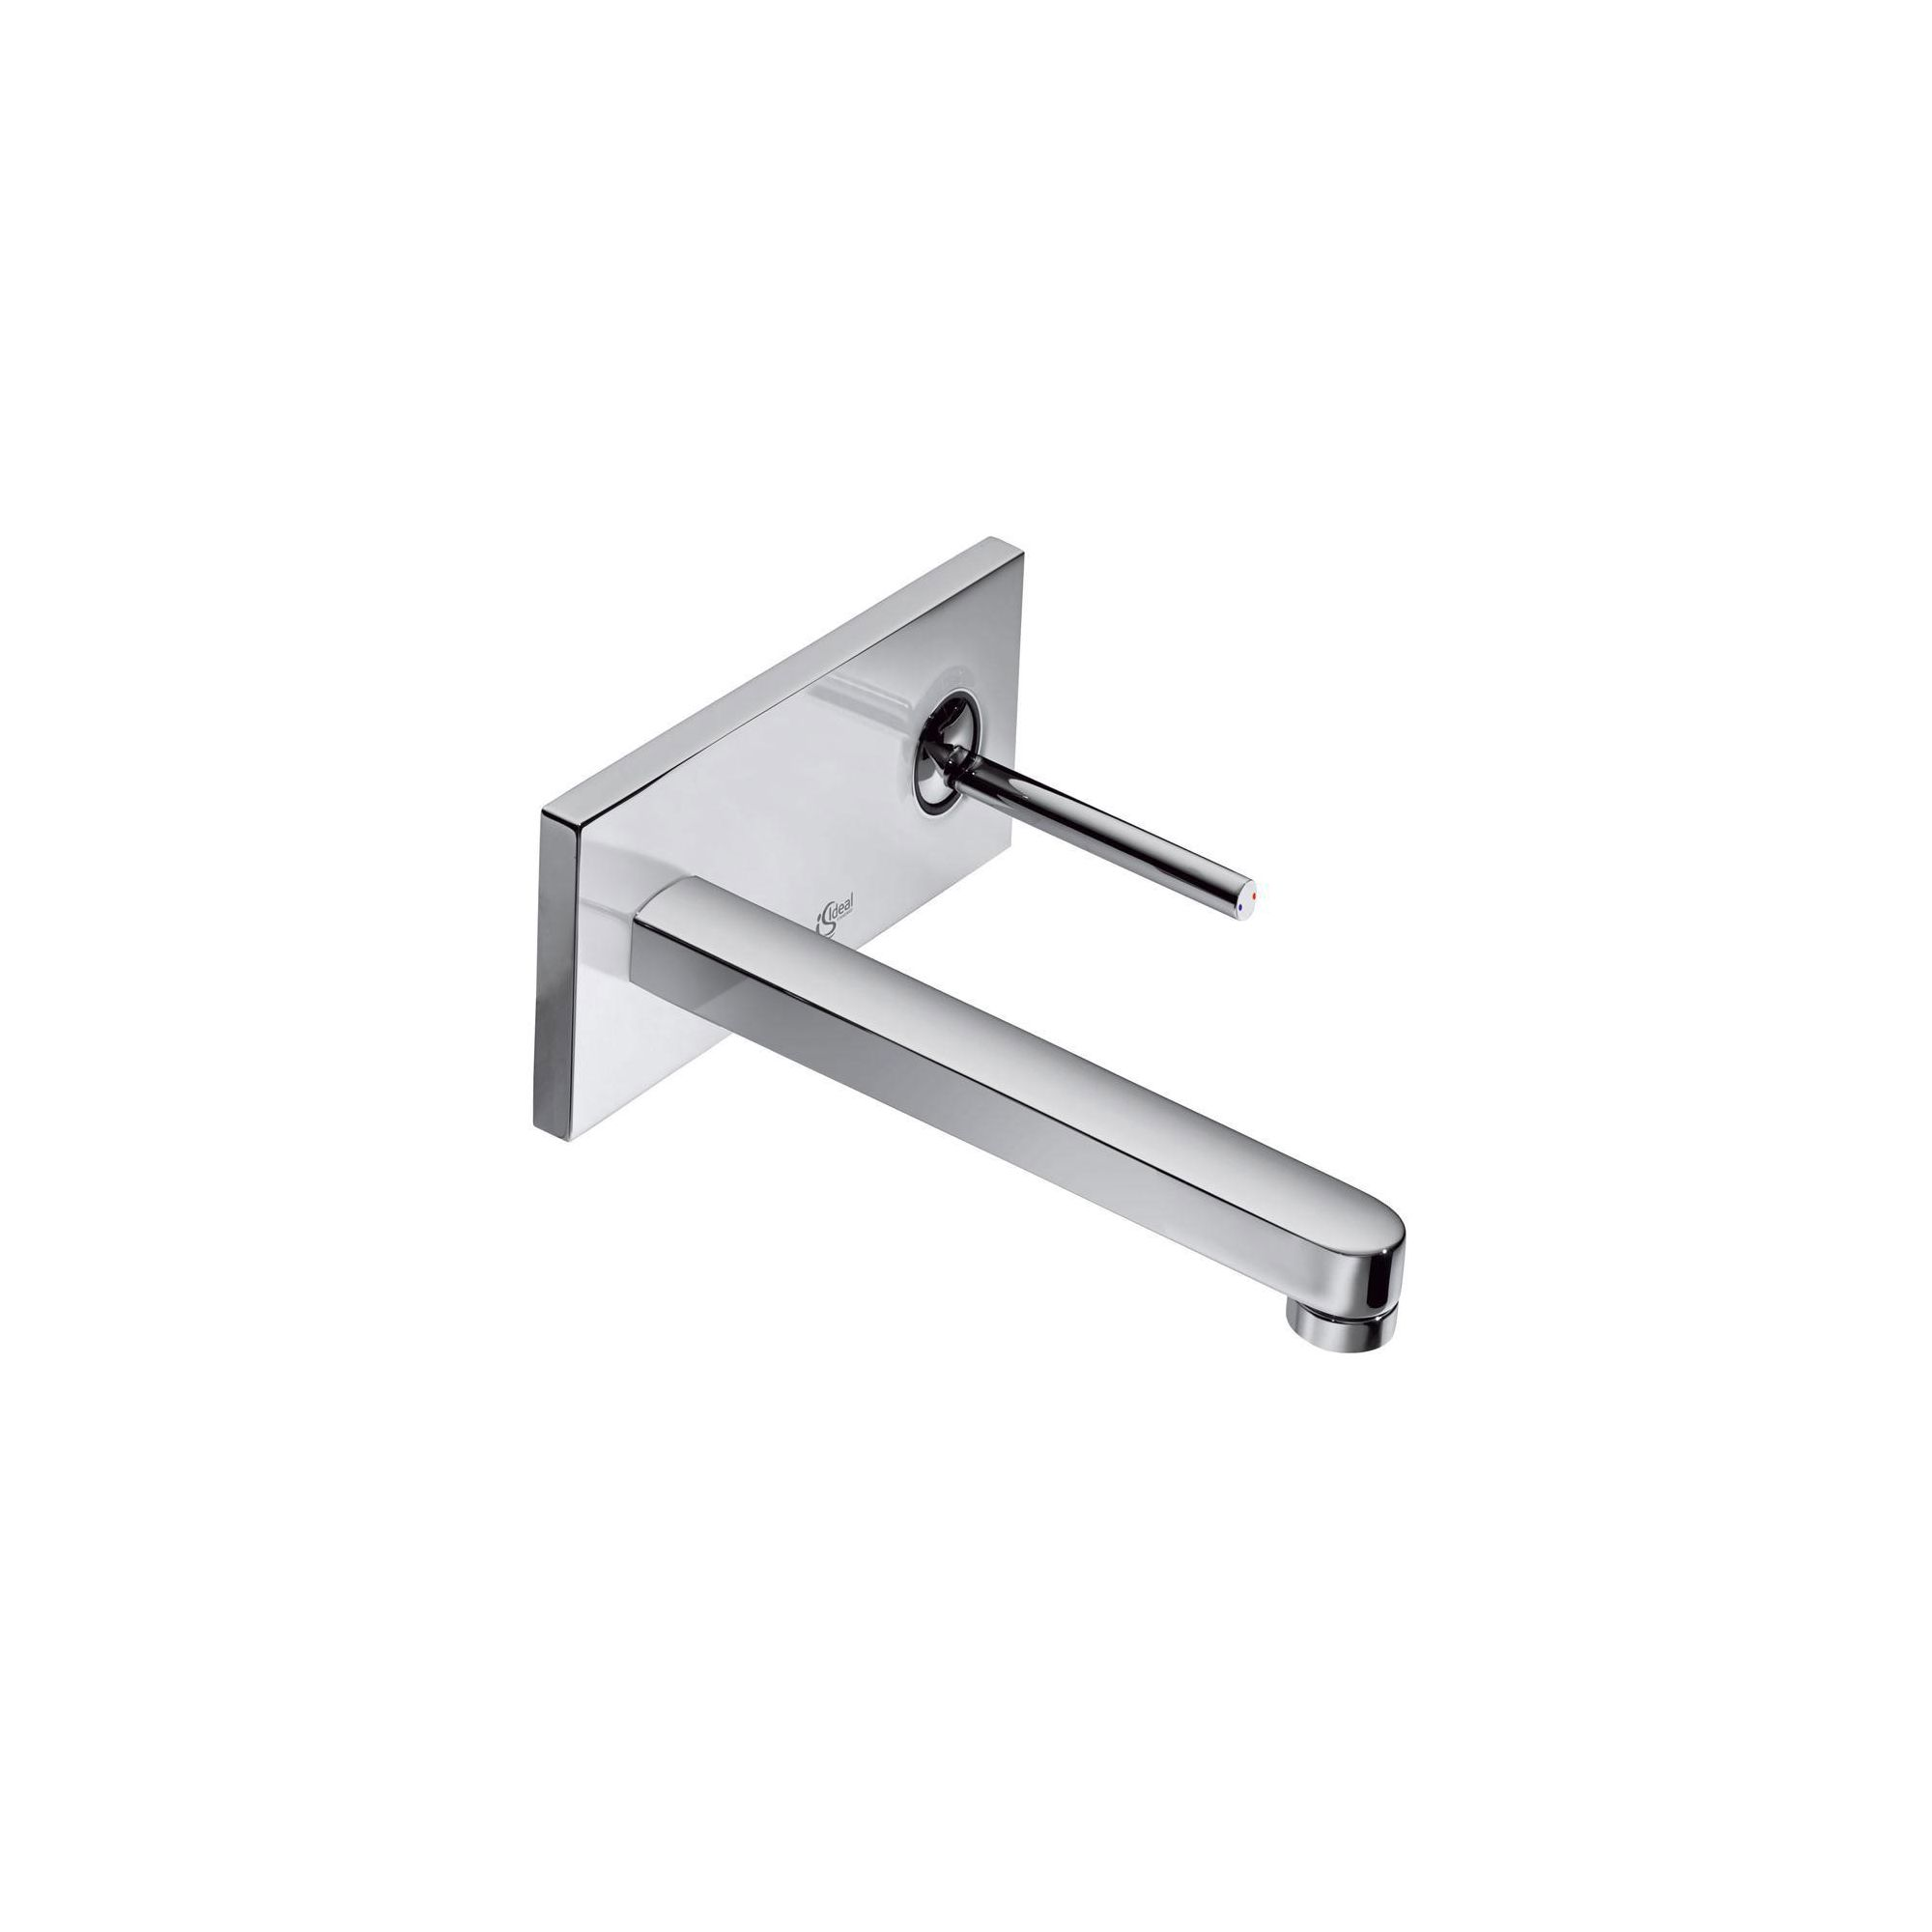 Ideal Standard Simply U 2 Tap Hole Wall-Mounted Rectangular Spout Basin Mixer Tap with Rectangular Backplate at Tesco Direct